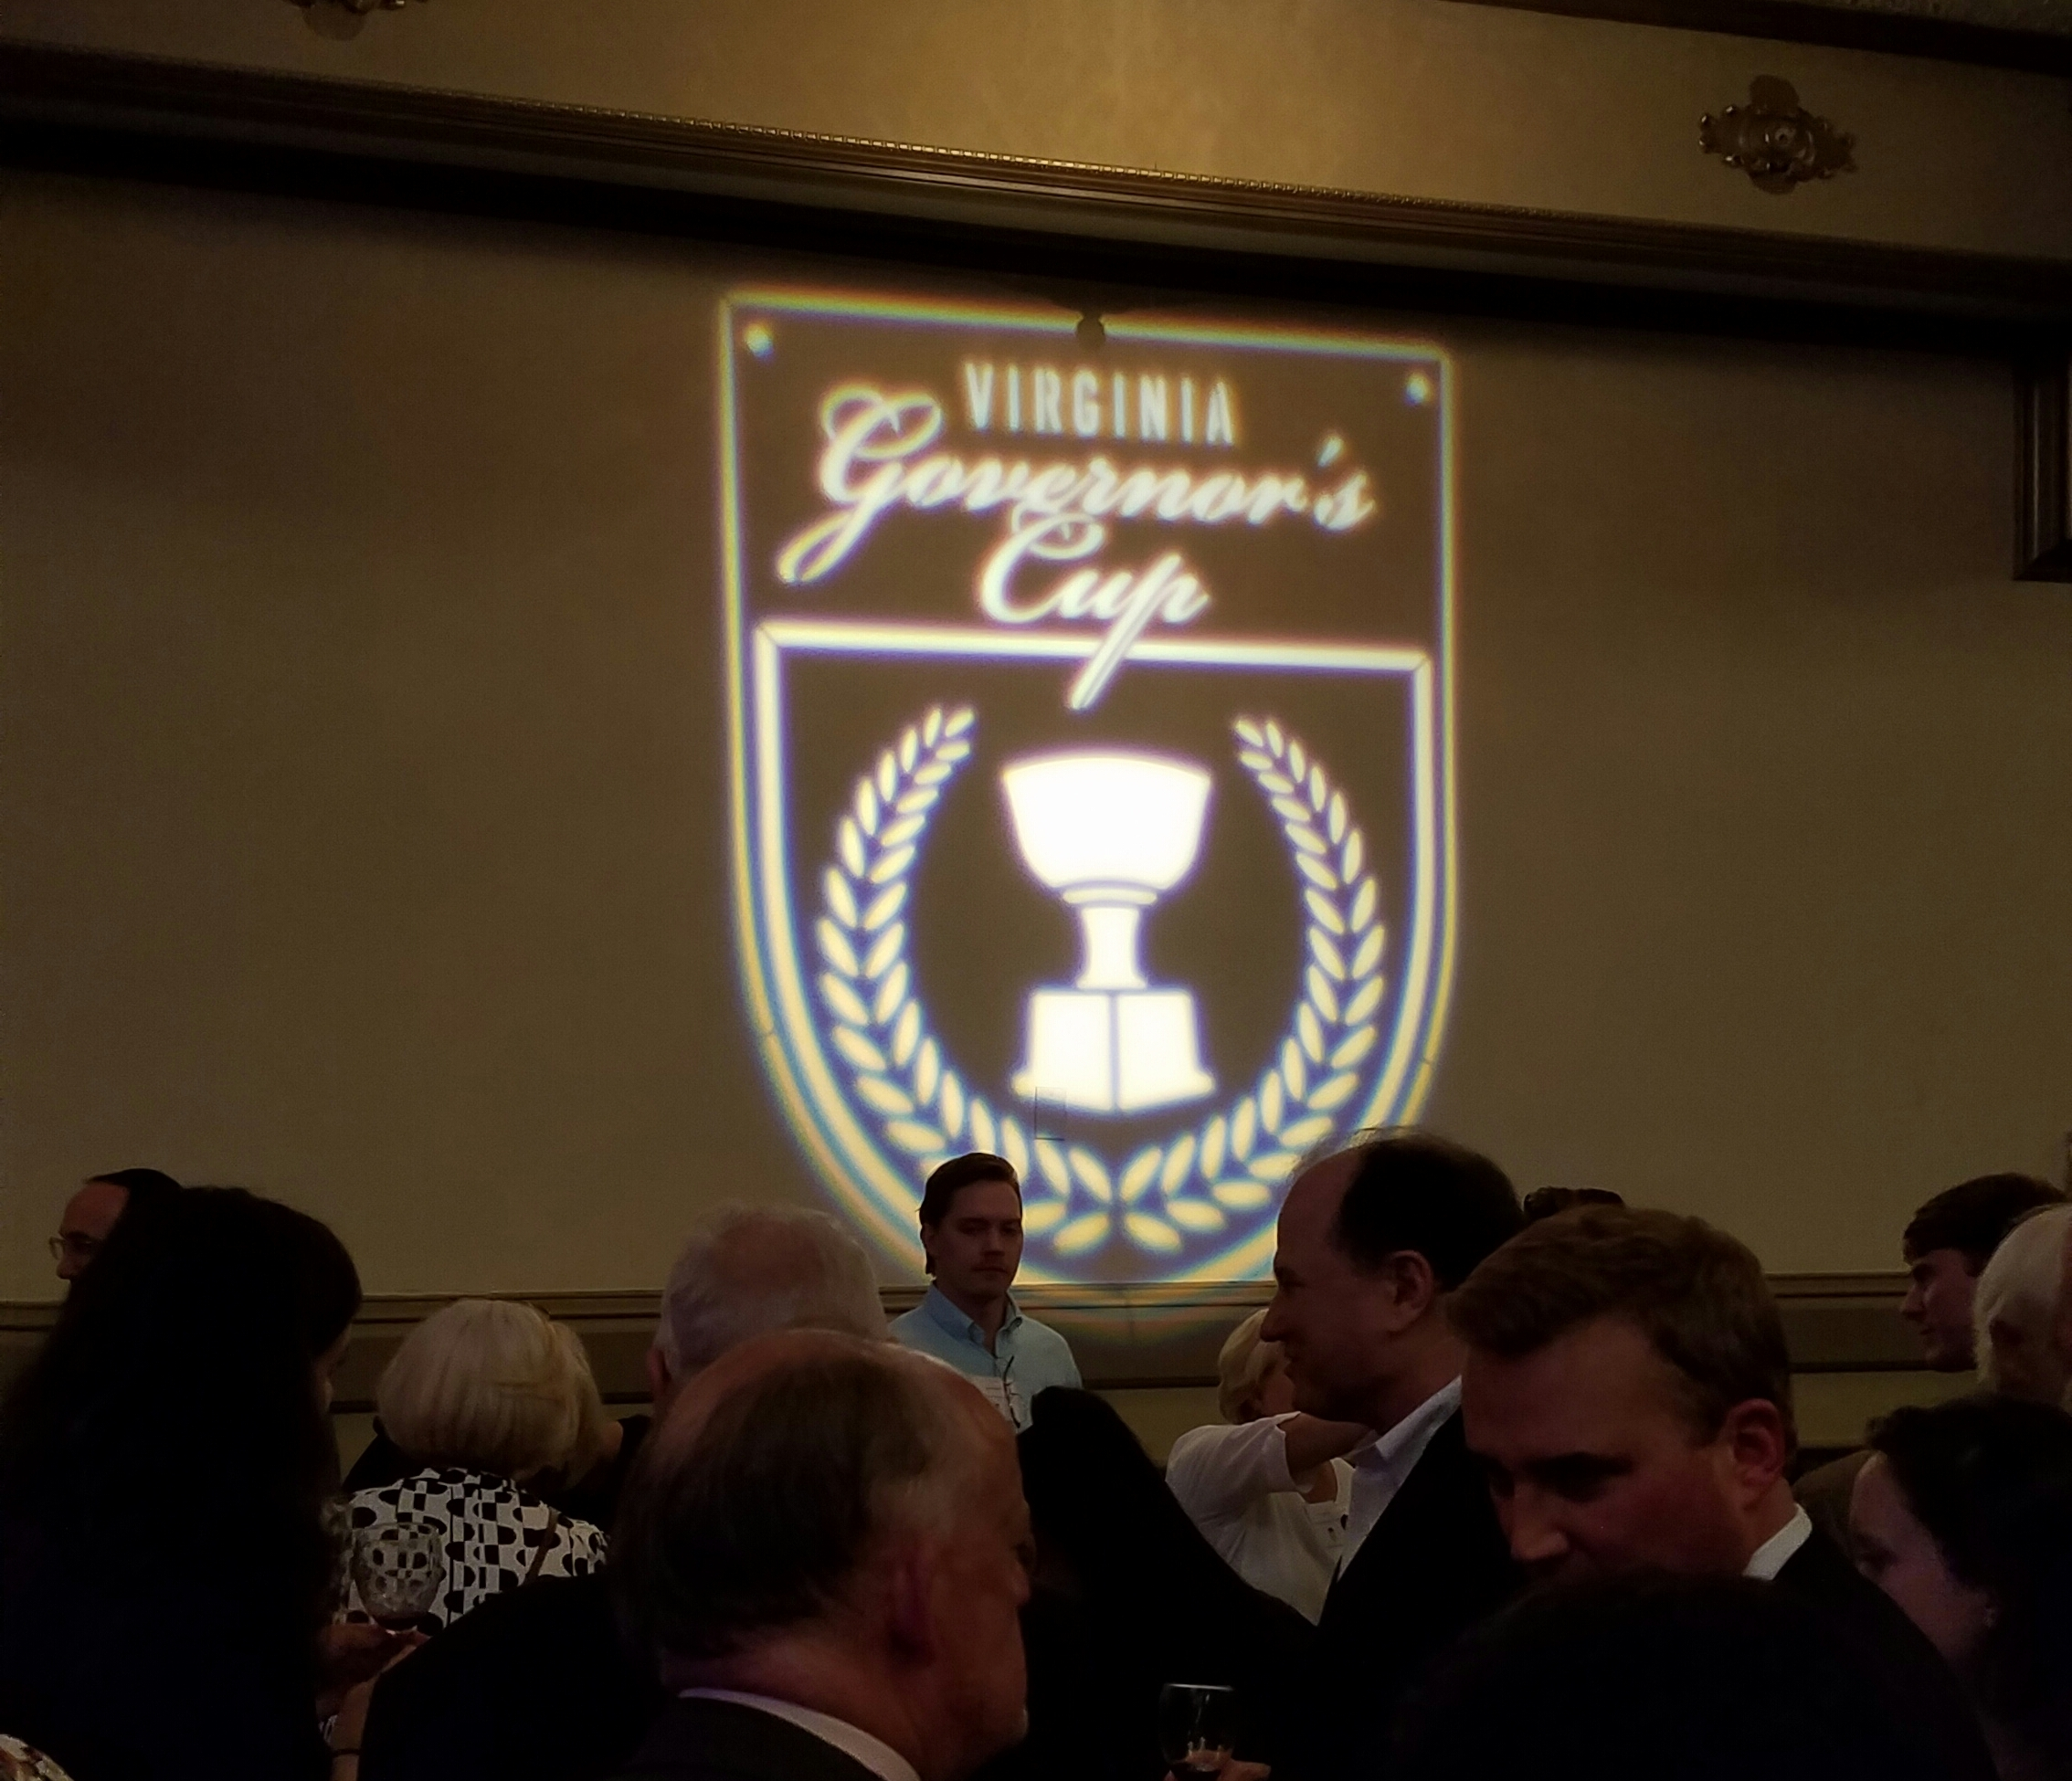 Hundreds from the virginia wine industry gathered in richmond at the john marshall hotel on tuesday, feb. 21 for the VA Wine Association governor's cup gala and award ceremony, hosted by the Virginia Wine Board..